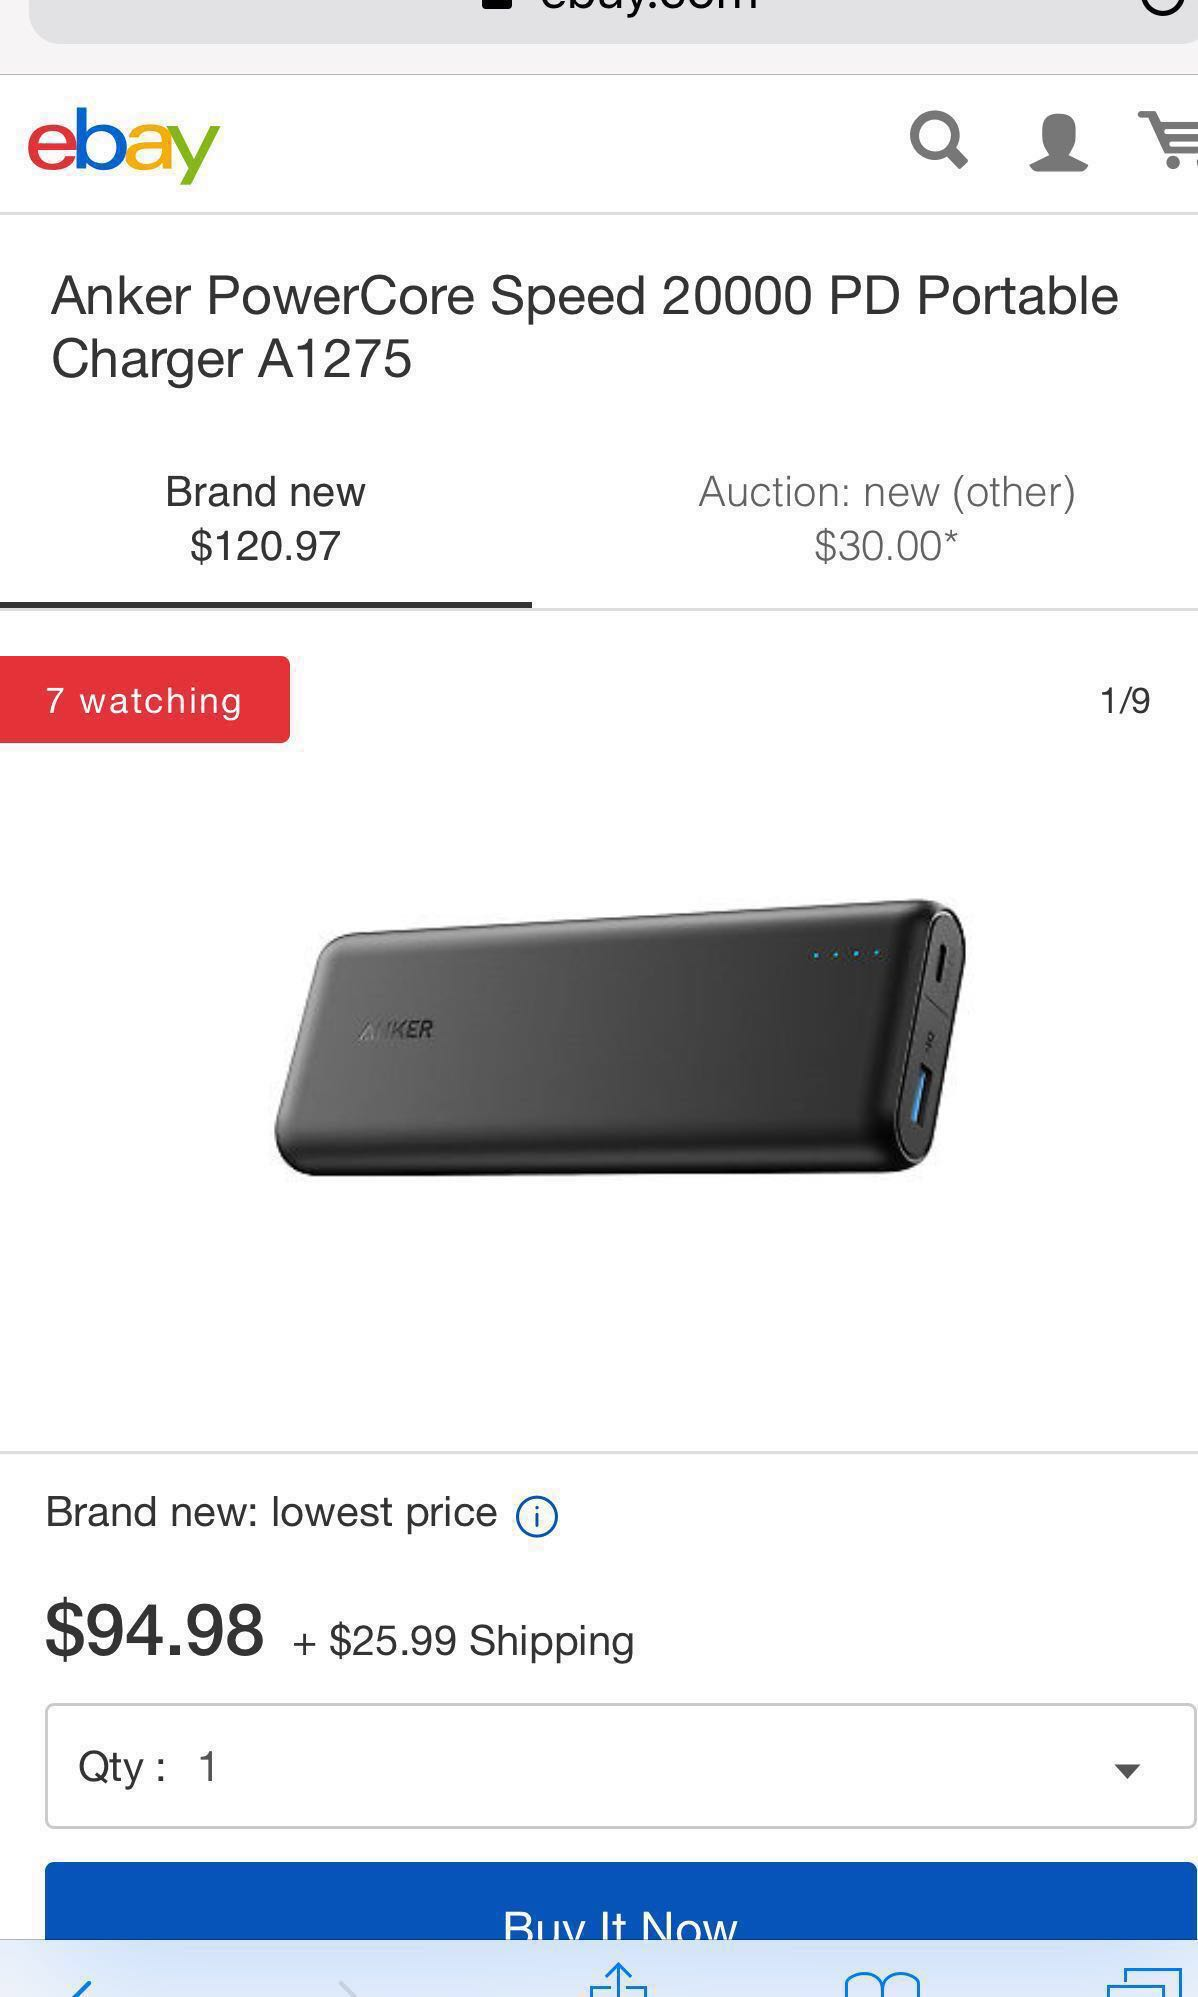 Anker PowerCore Speed 20000 PD Portable Charger A1275